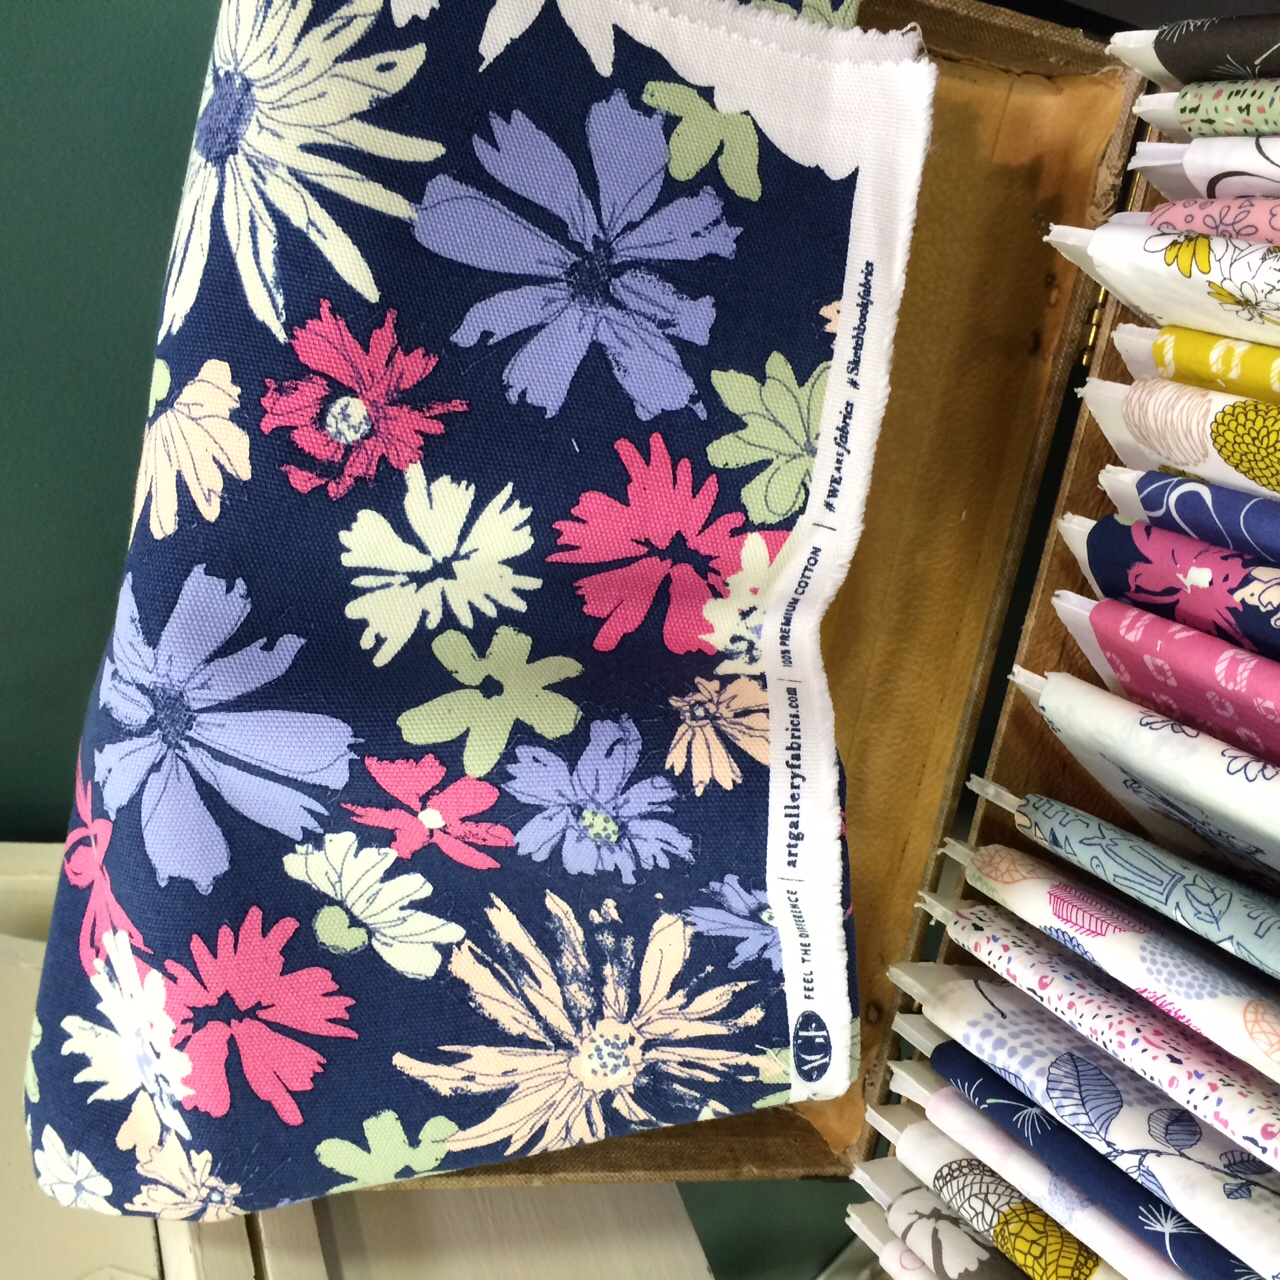 Ink Outburst Atelier Canvas by Sharon Holland for Art Gallery Fabrics